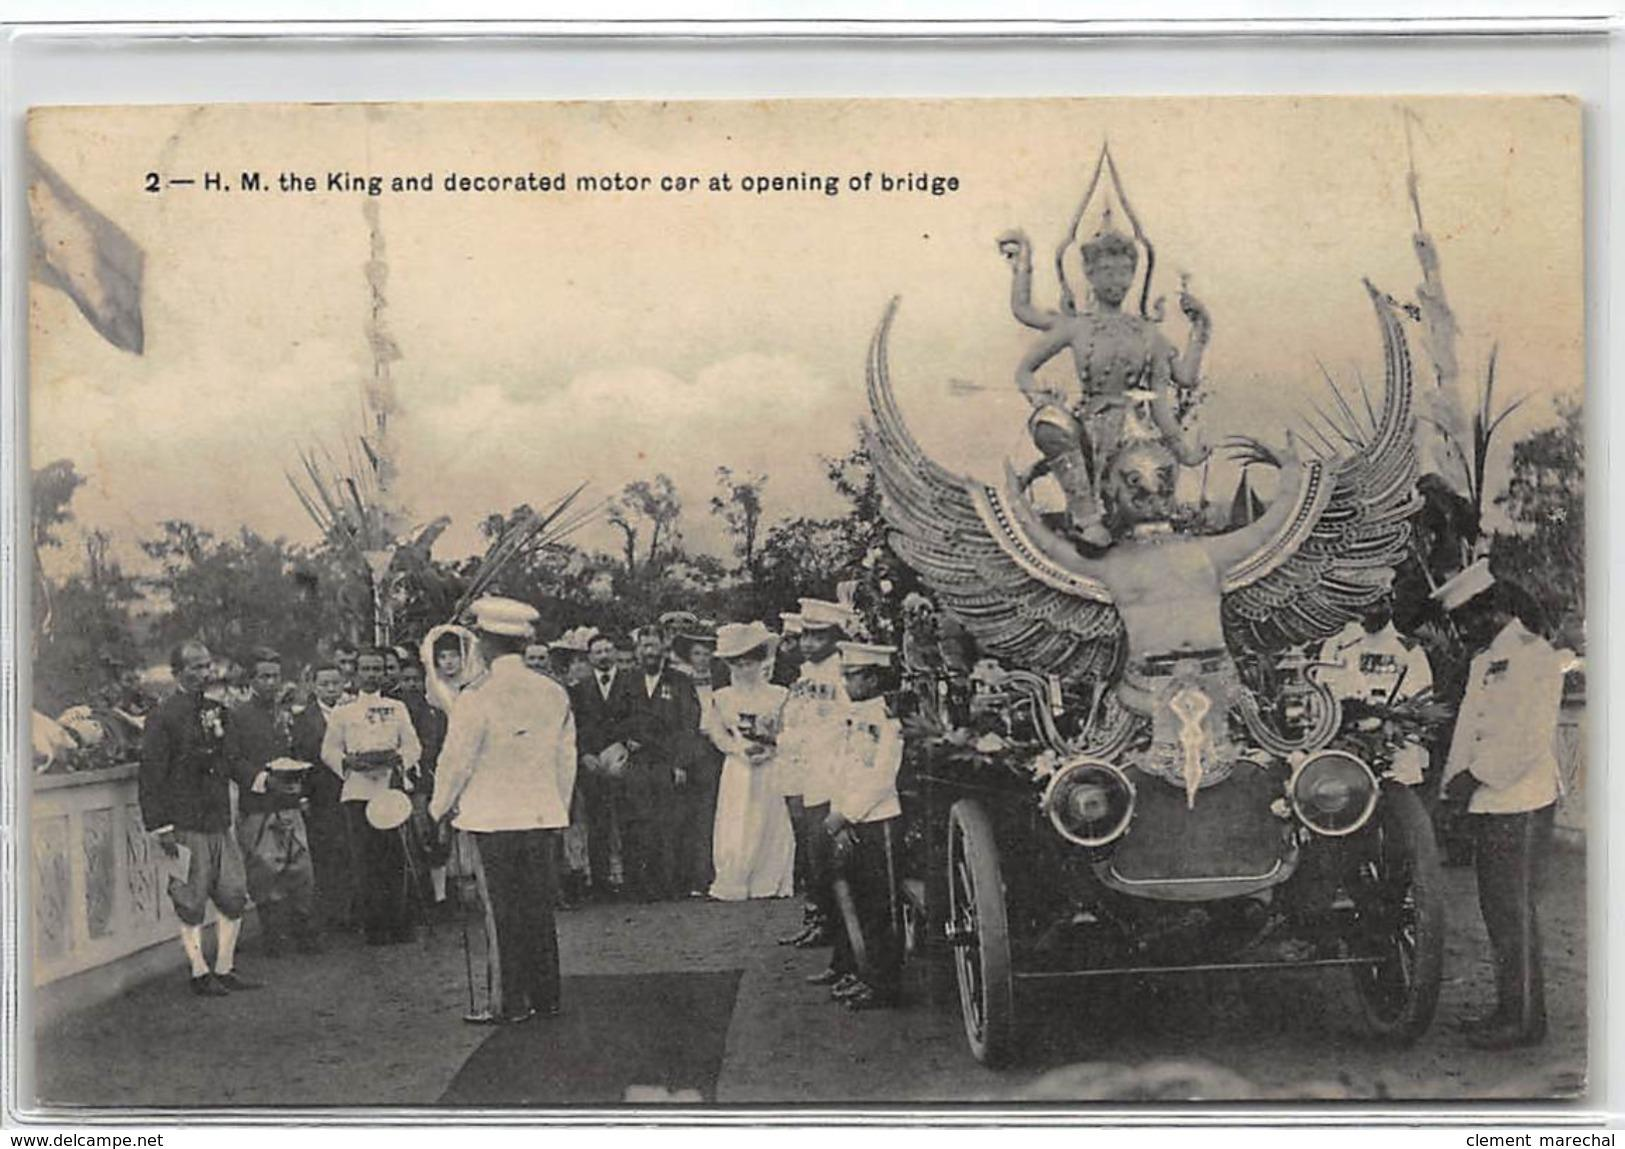 Carte postale ancienne THAILANDE : H.M. the king and decorated motor car at opening of bridge